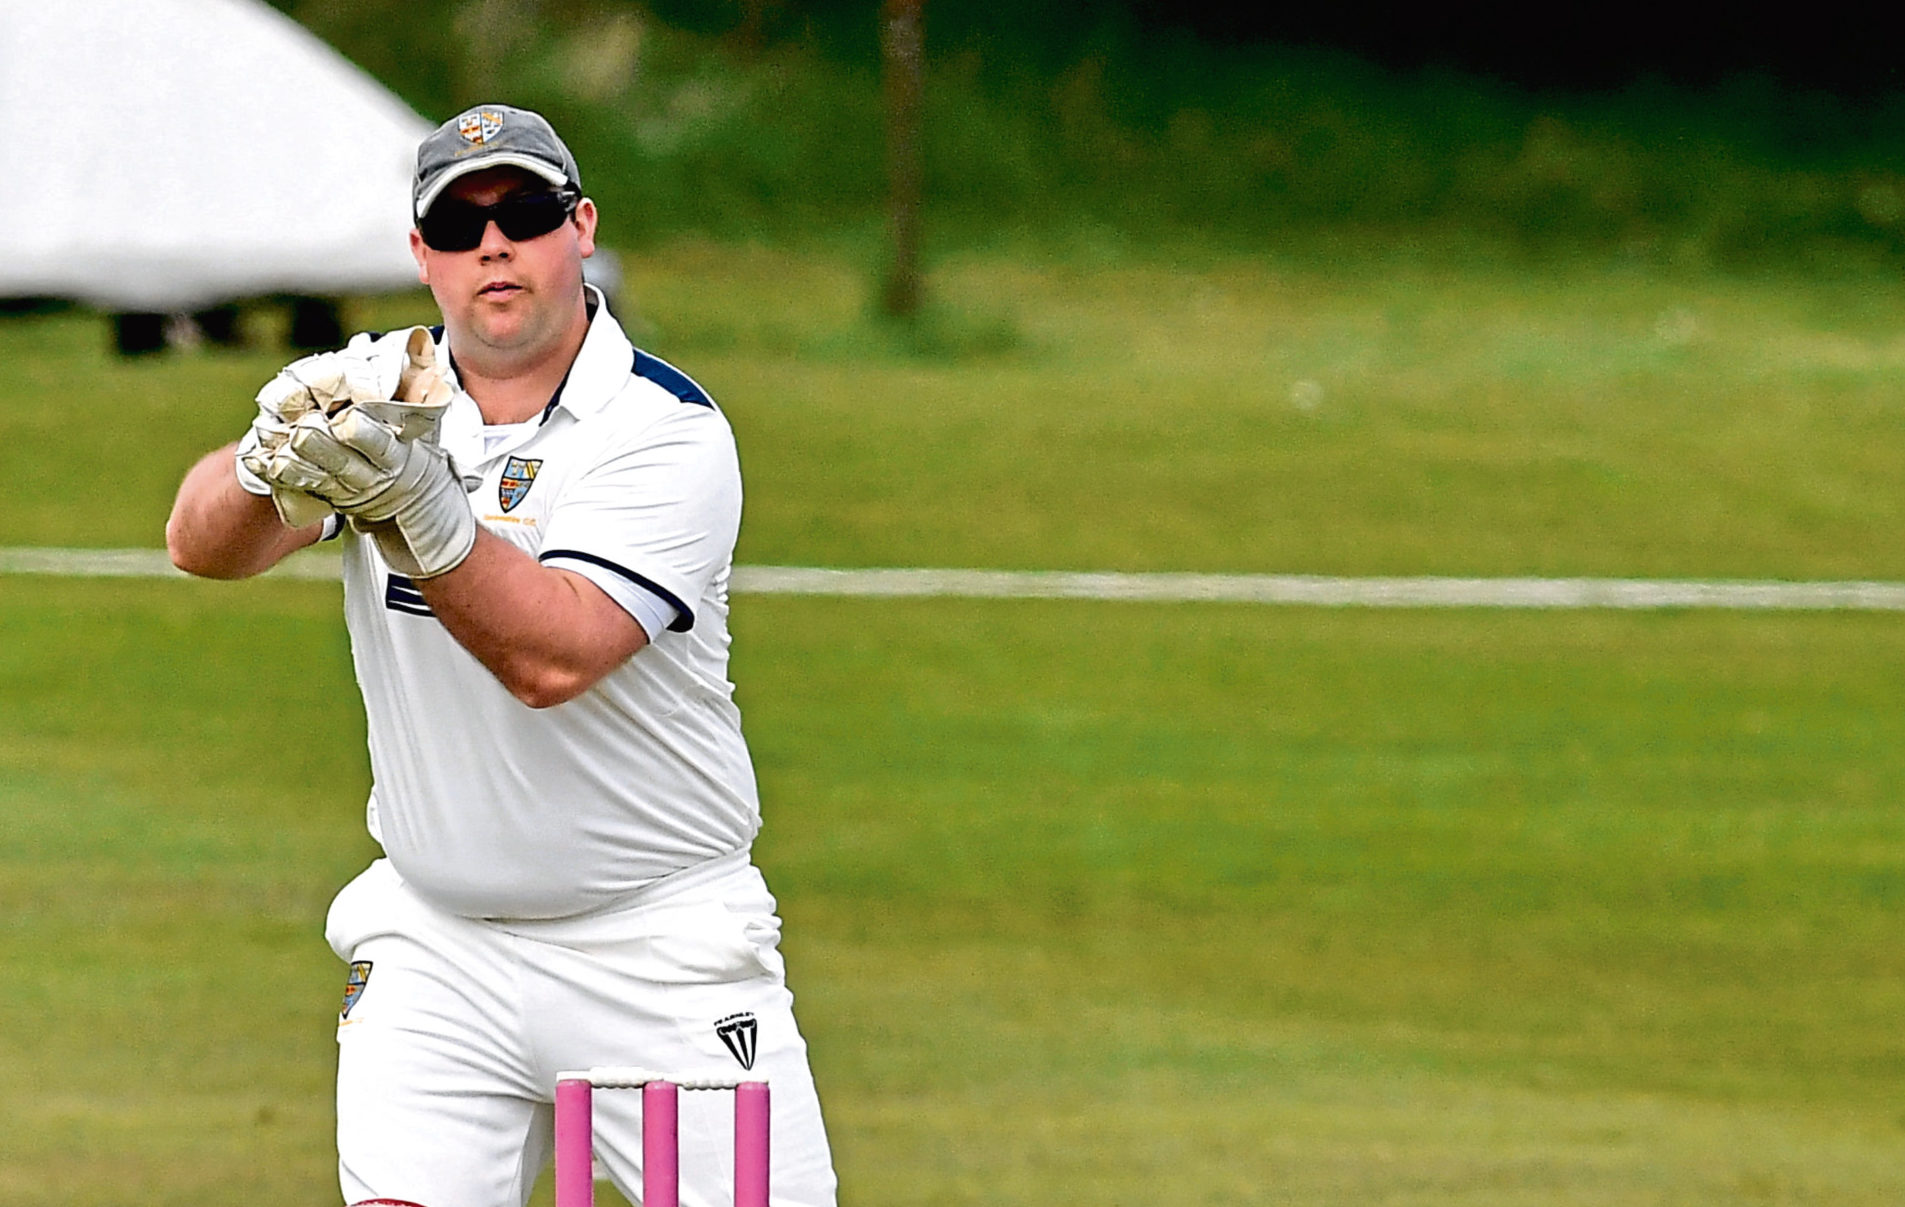 Aberdeenshire captain Kenny Reid has acknowledged the enormity of the weekend for his side